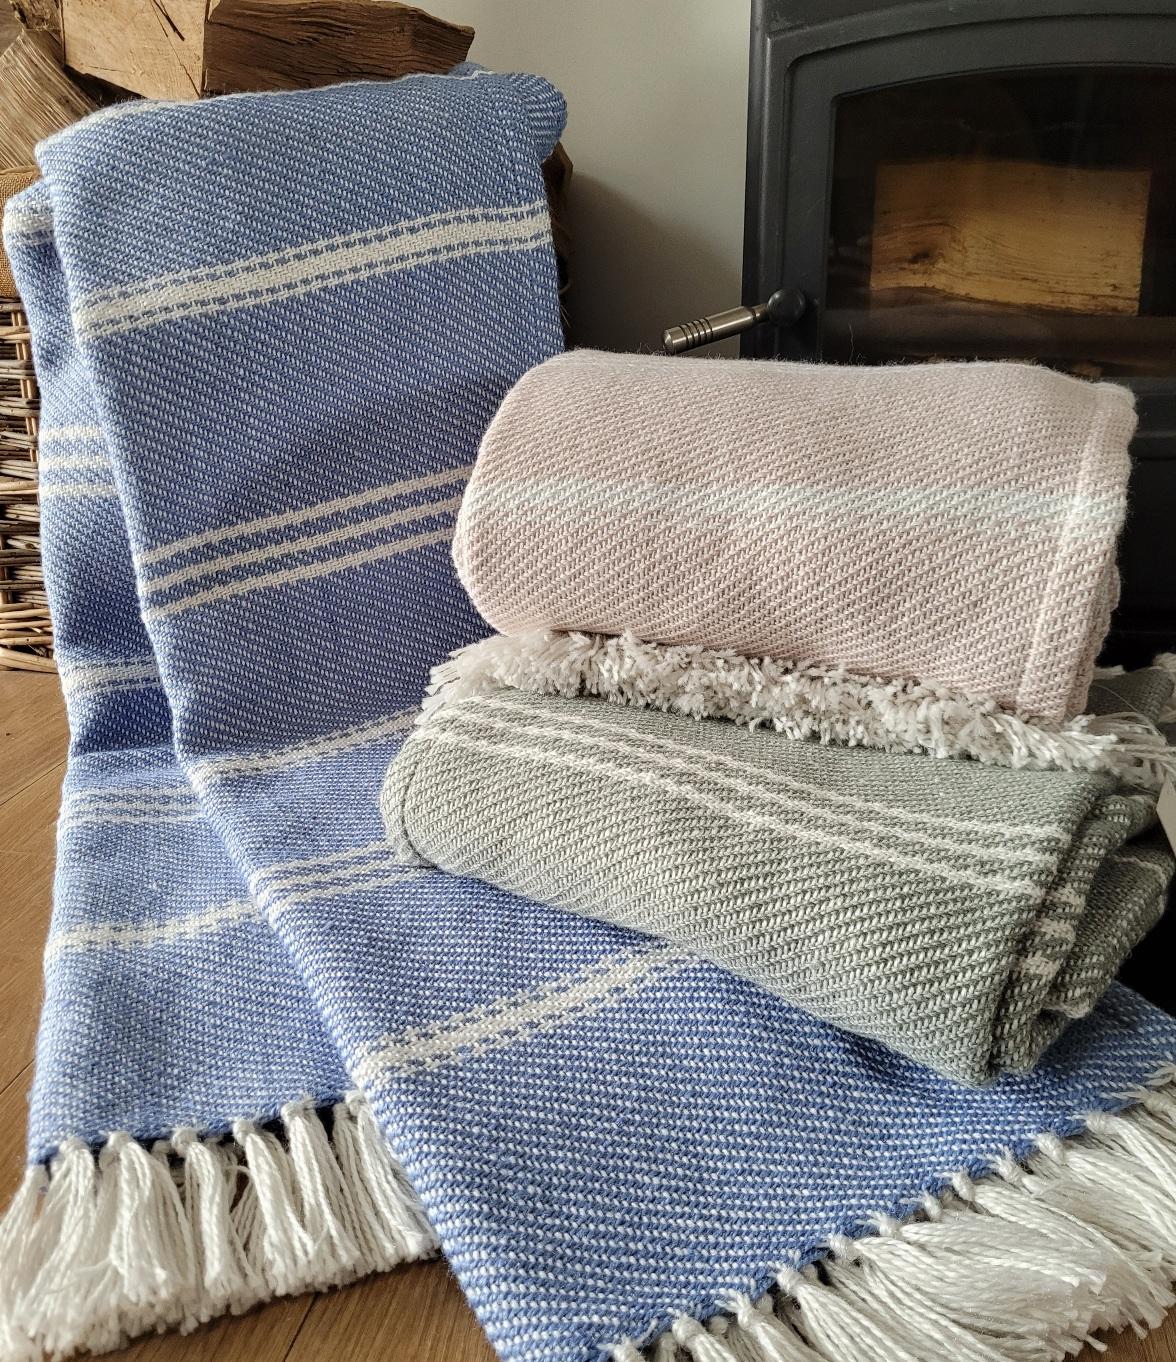 Throws. Oxford stripe. Made with 100% recycled plastic bottles